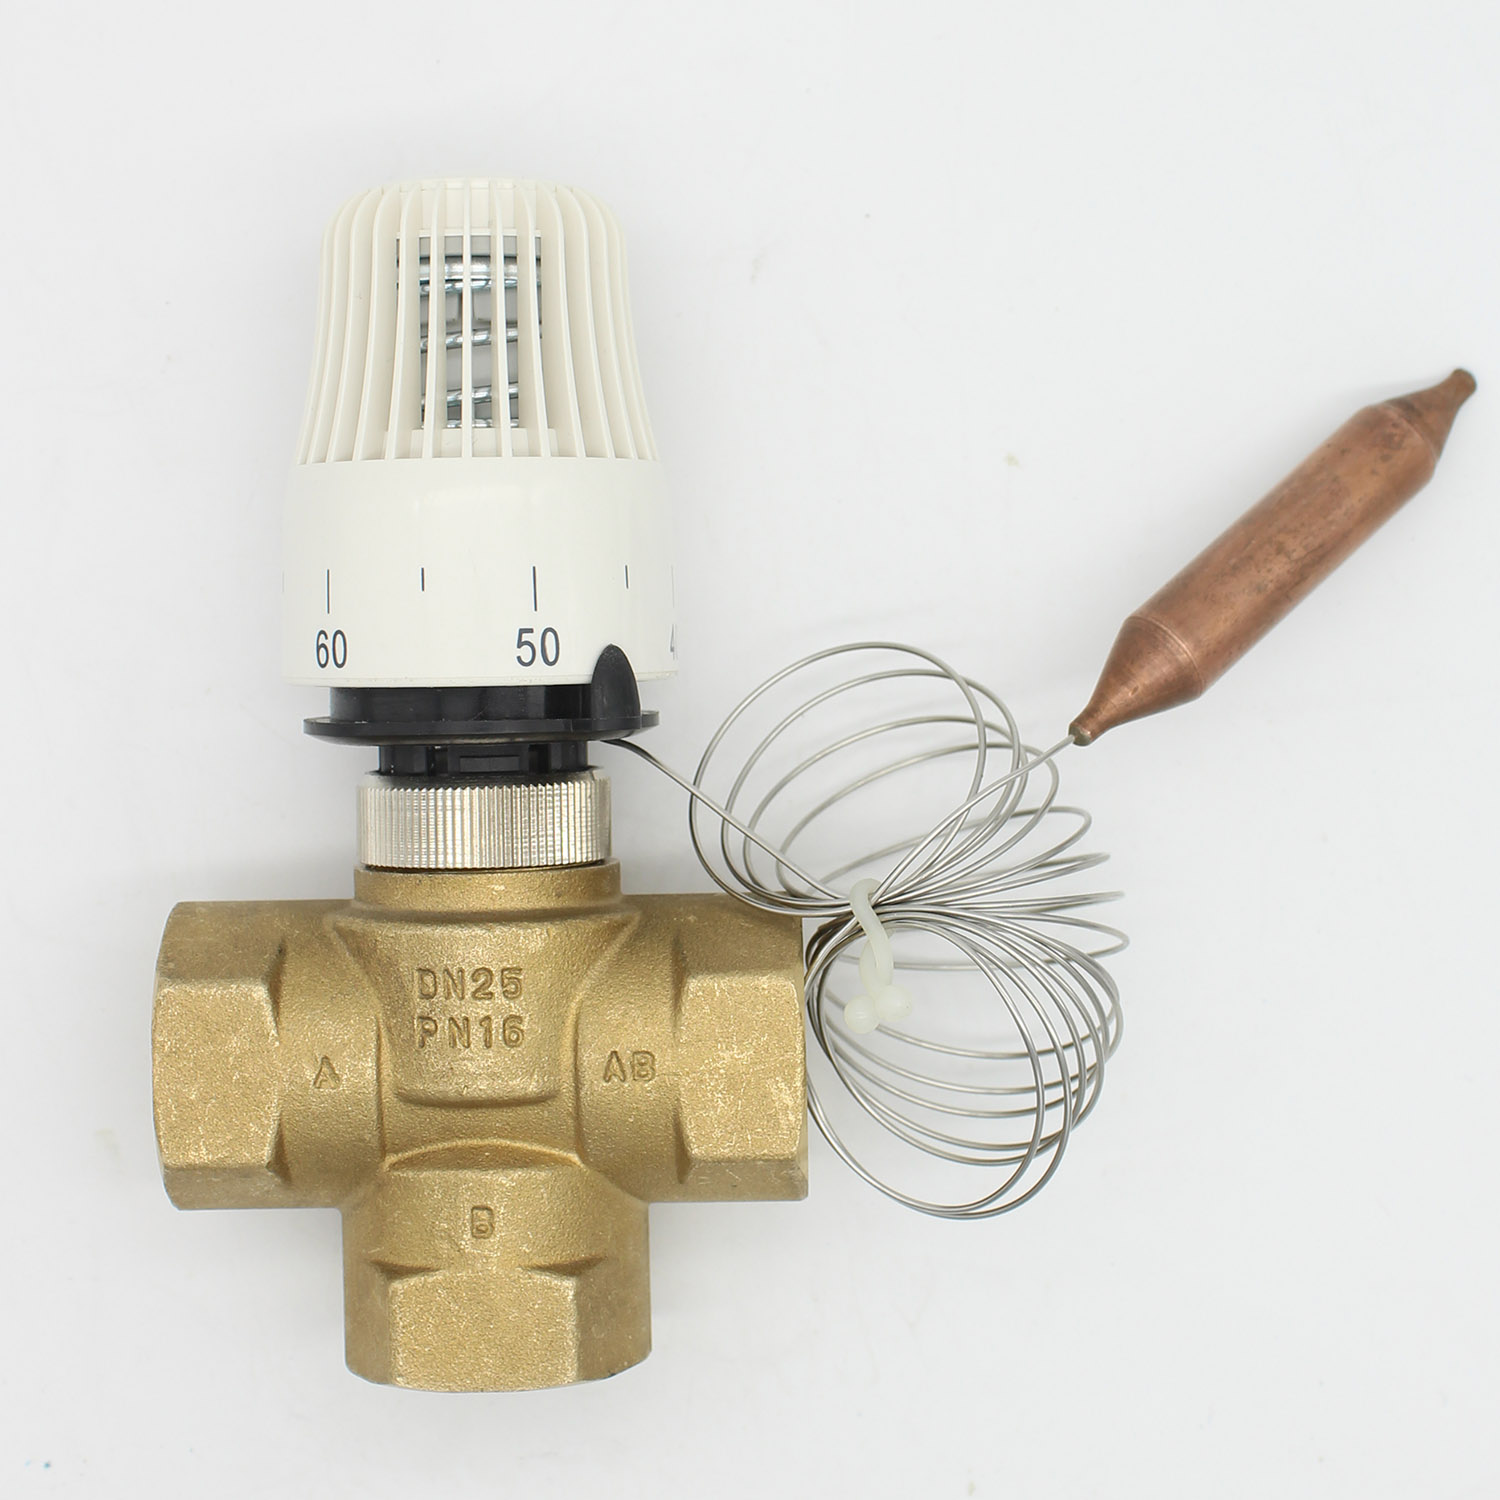 Energy saving 30 70 degree control Floor heating system thermostatic radiator valve M30*1.5 Remote controller 3 way brass valve-in Valve from Home Improvement    1